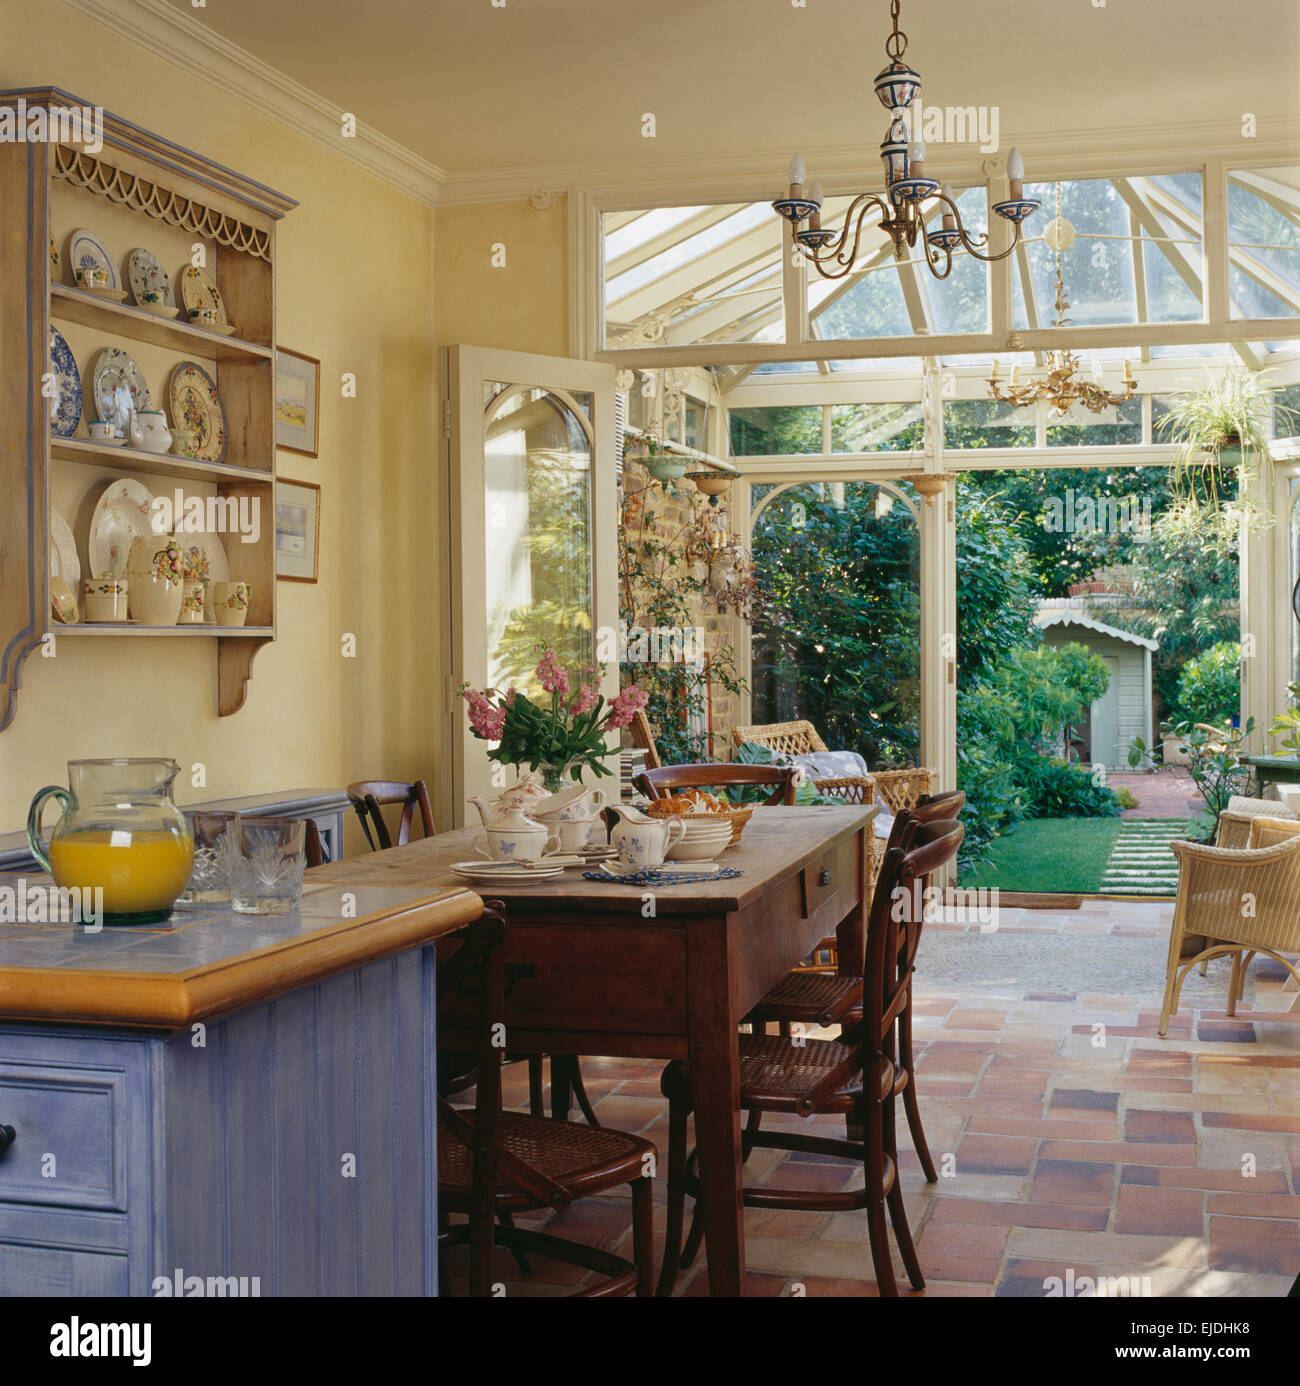 Simple Wooden Table And Chairs In Country Kitchen Dining Room With  Conservatory Extension And Doors Open To The Garden